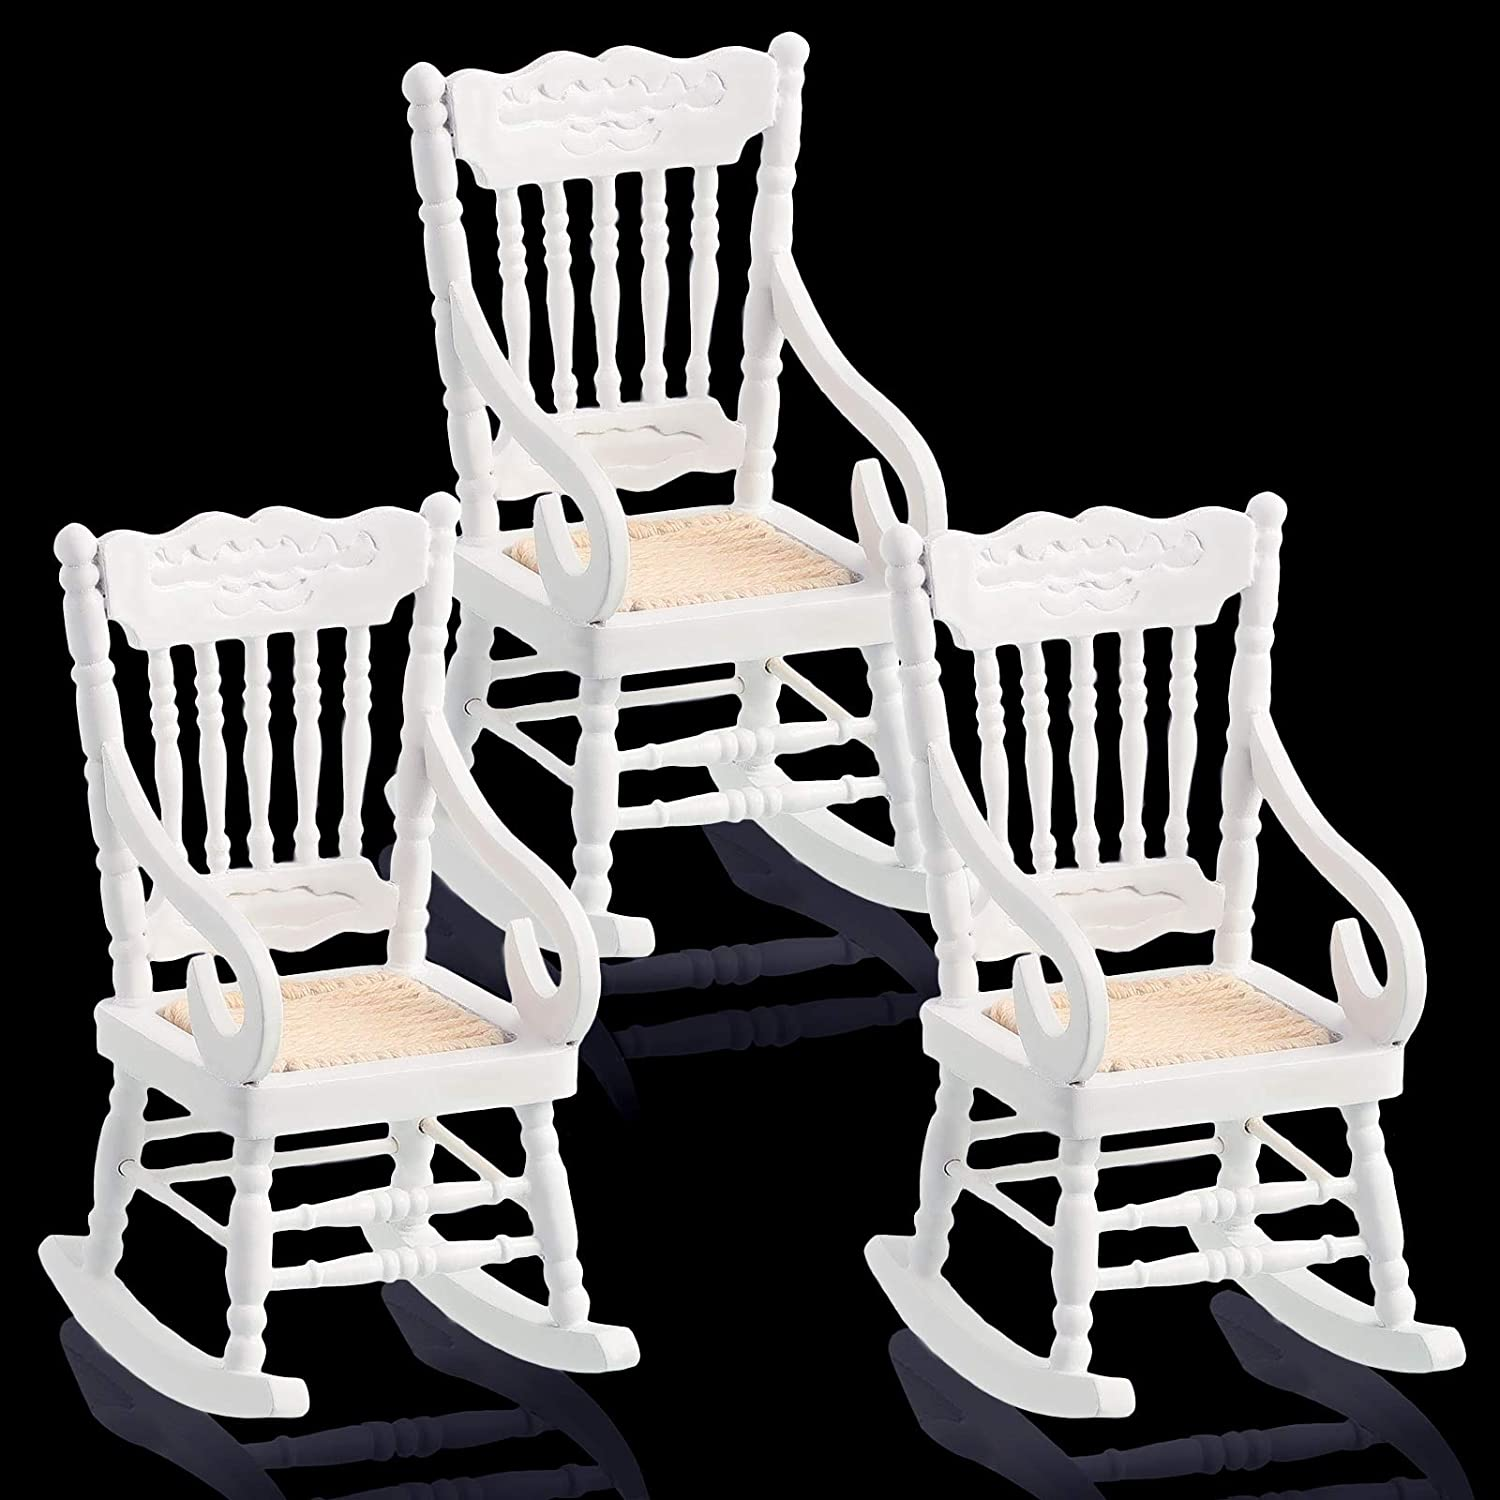 Jetec 3 Pieces Doll House Wooden Chairs 1:12 Scale Christmas Dollhouse Model Chairs Mini Dollhouse Wooden Rocking Chairs for Dollhouse Decoration, White